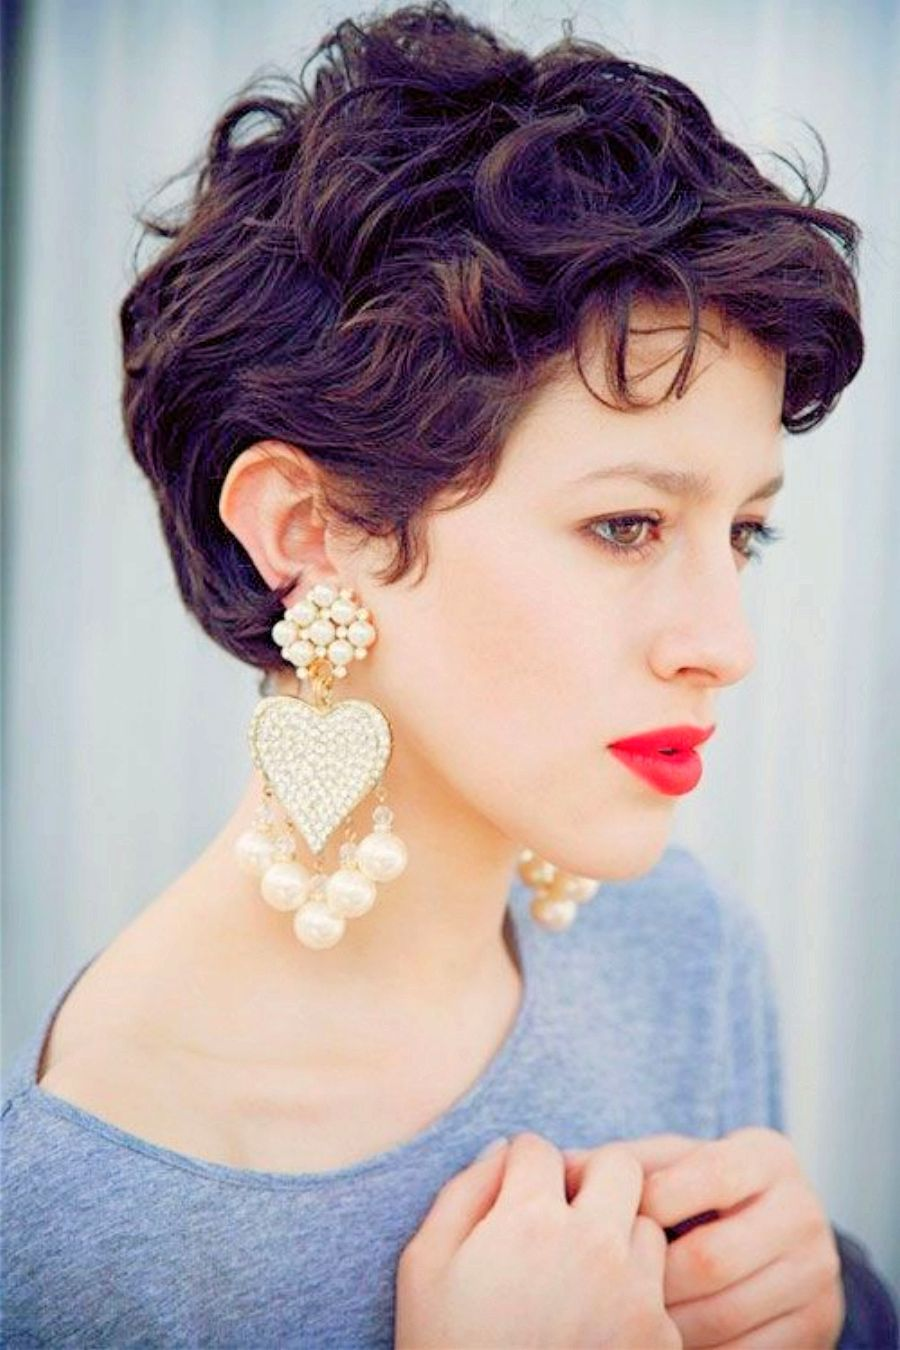 Short Curly Pixie Hairstyles Curly Short Hairstyles Hair